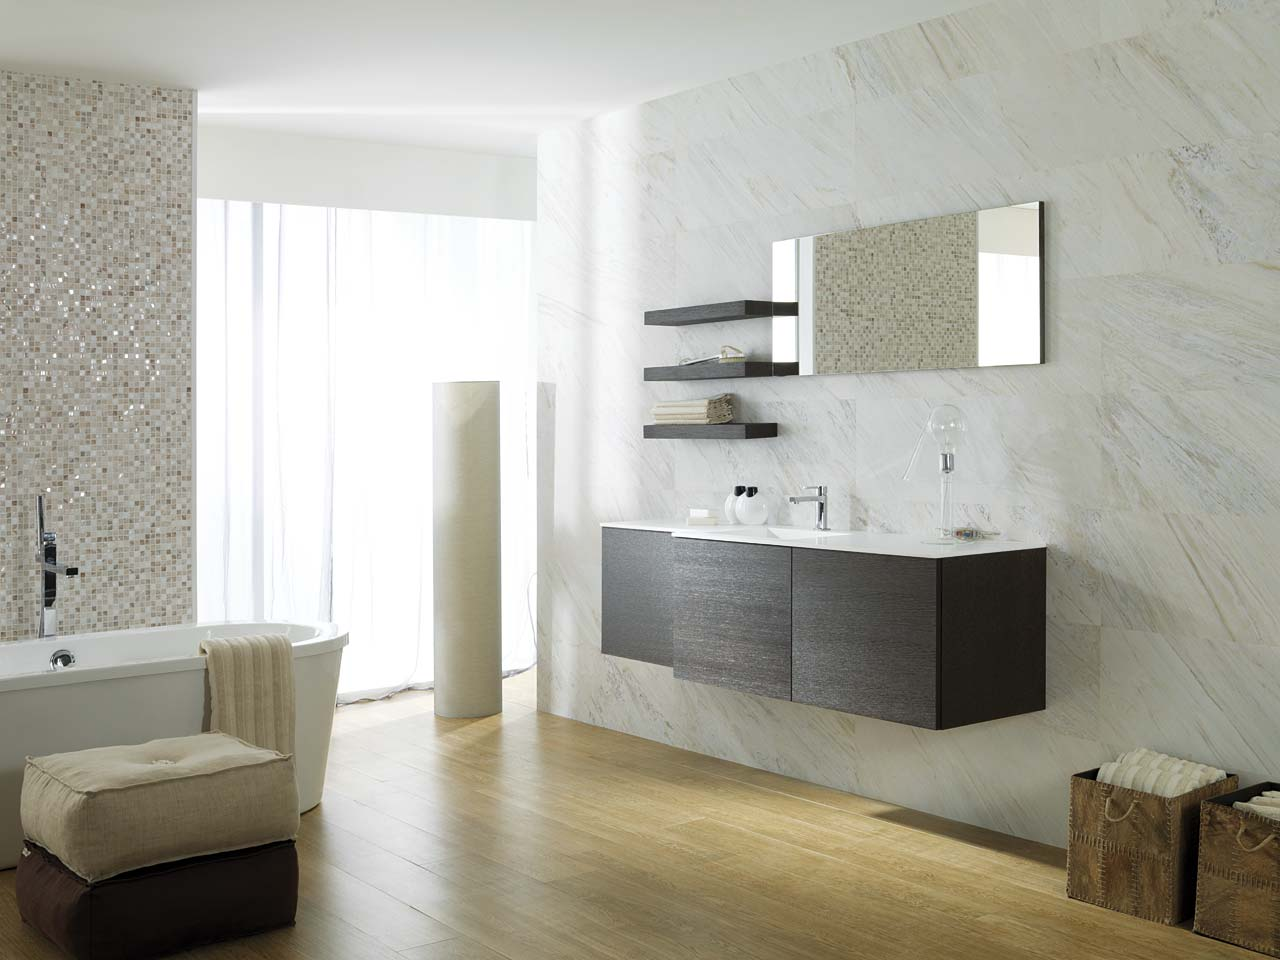 5 simple tips to brighten your interior design bruzzese - Cuartos de bano porcelanosa ...